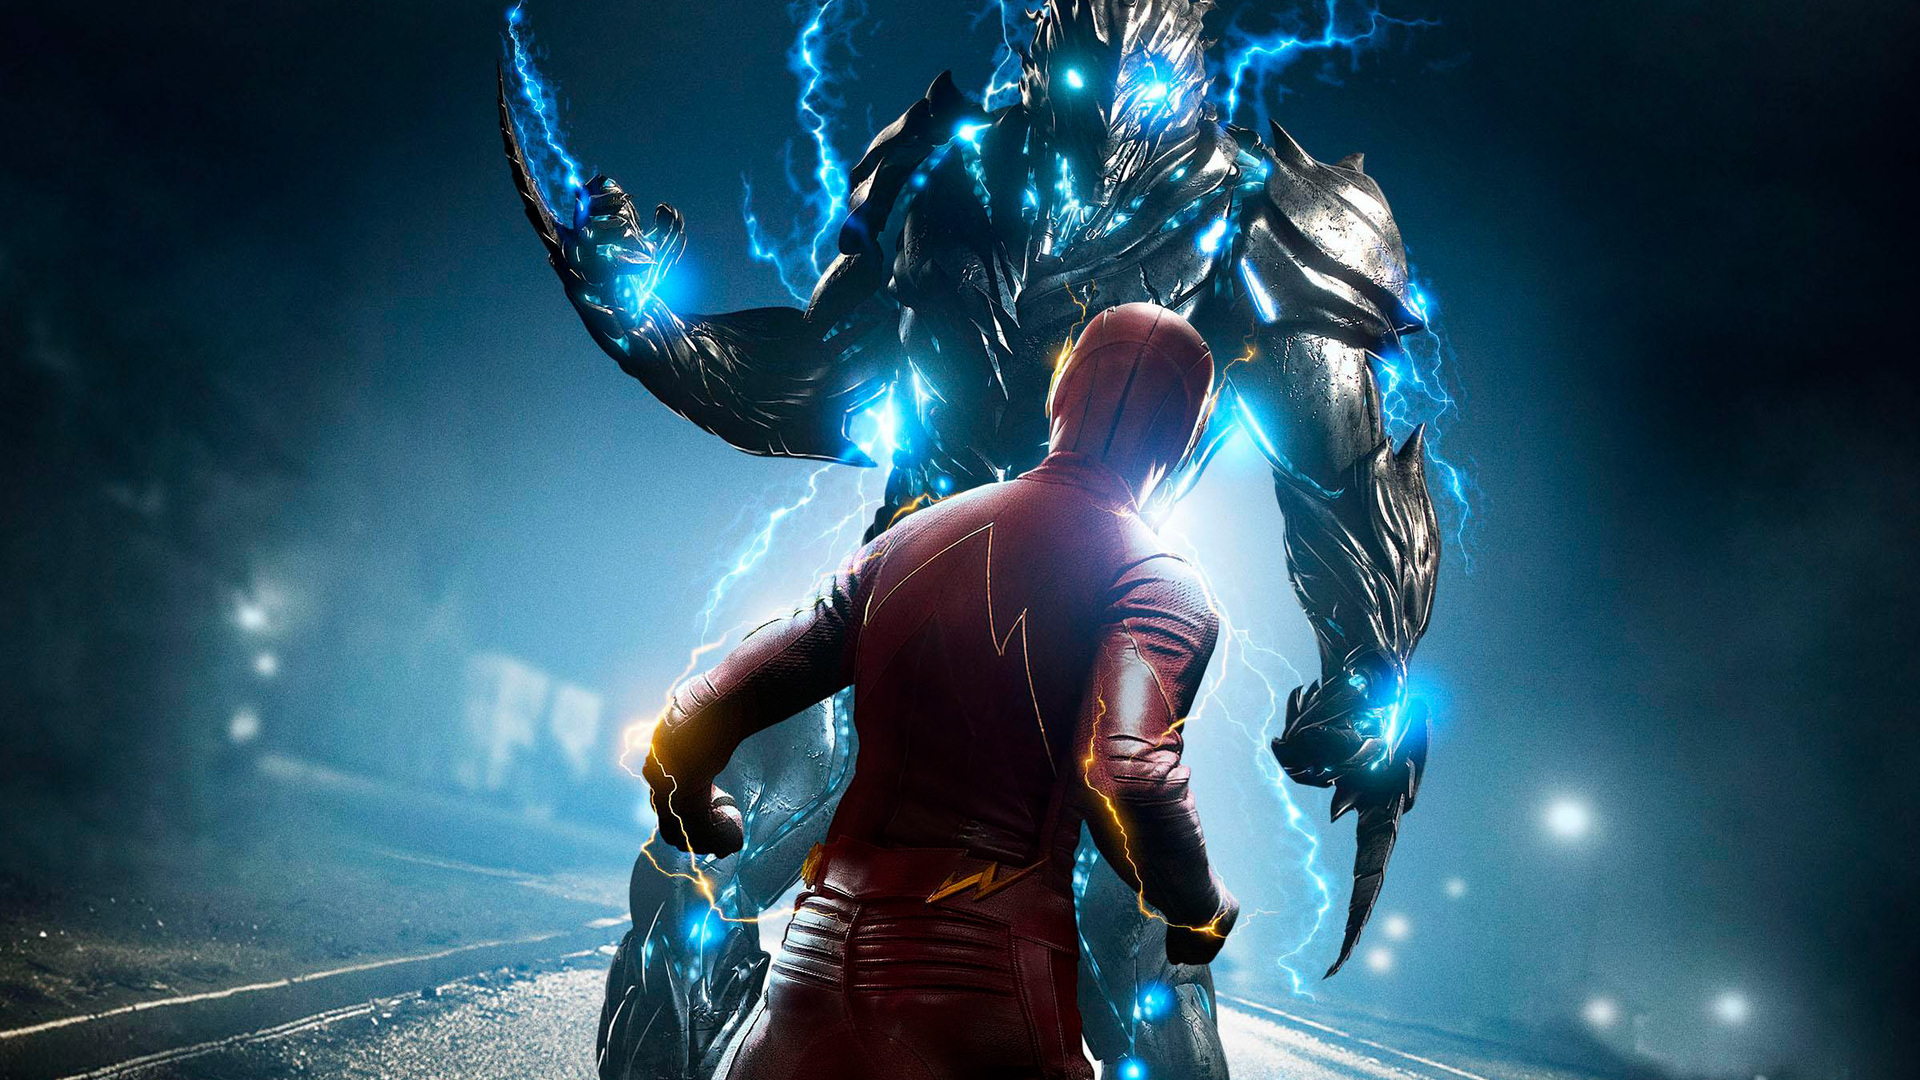 1920x1080 the once and future flash 2017 laptop full hd - Flash wallpaper hd 1080p ...